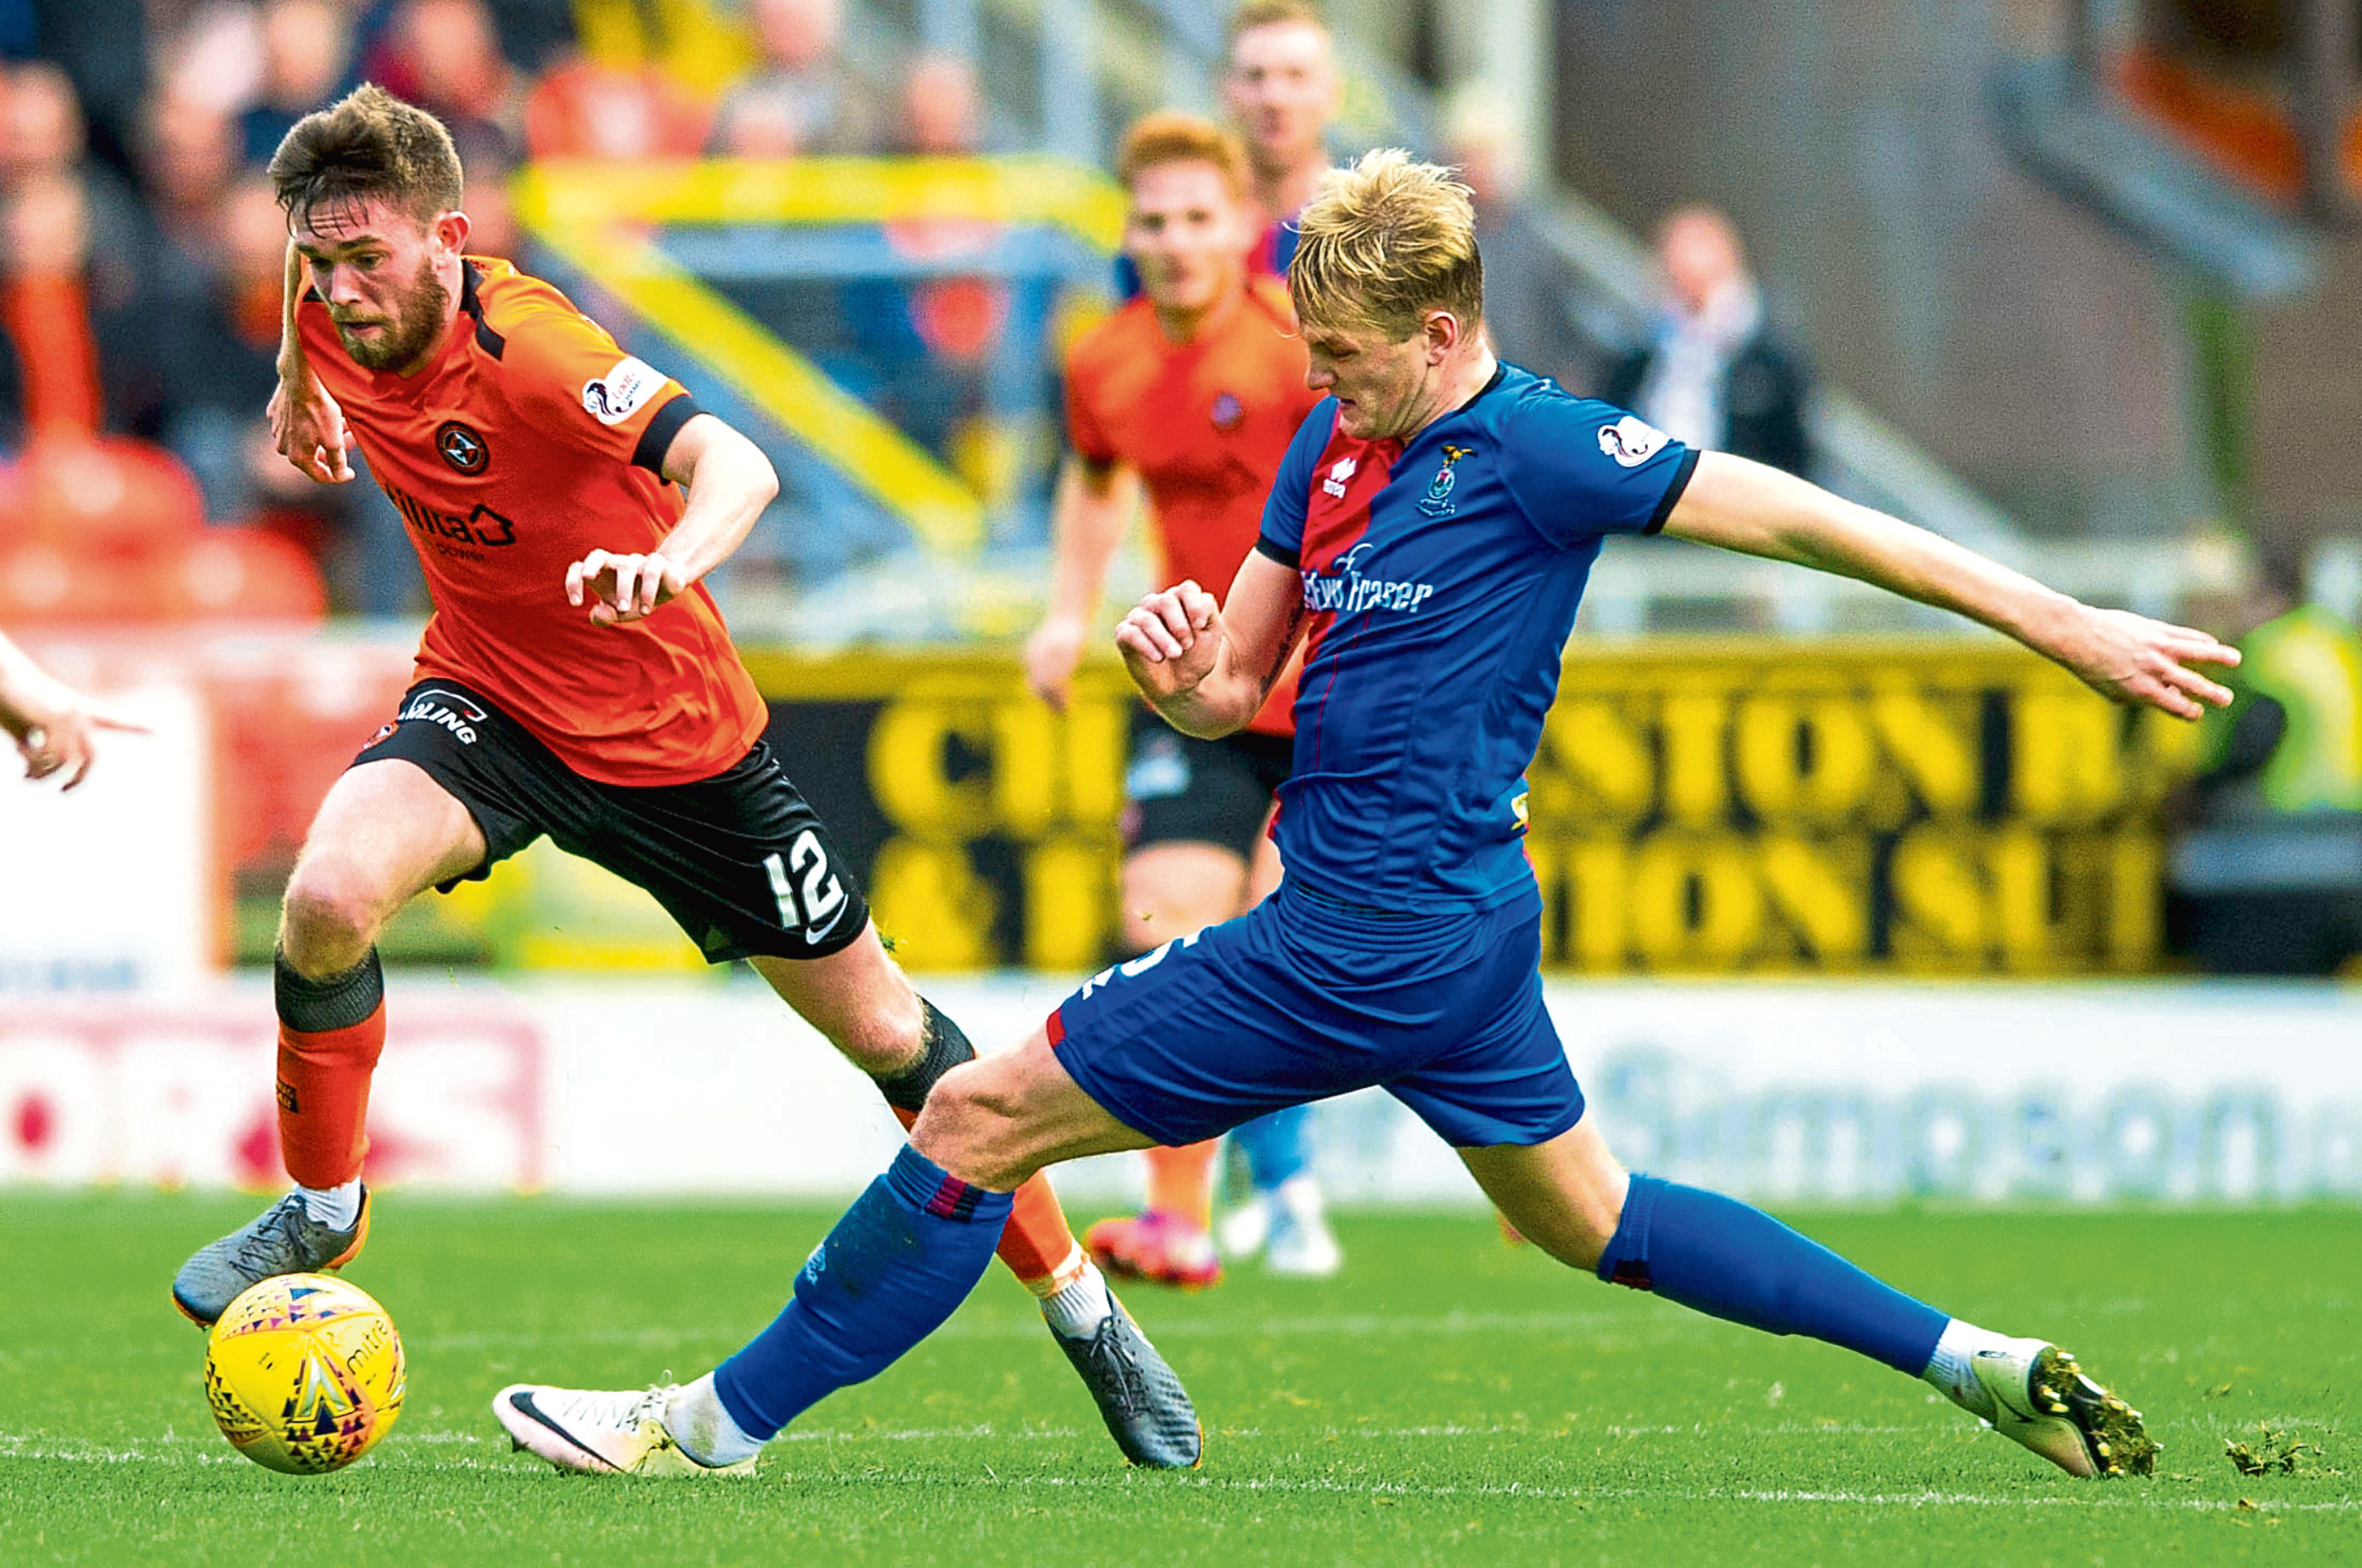 Sam Stanton skips past former United man Coll Donaldson in the weekend clash against Inverness